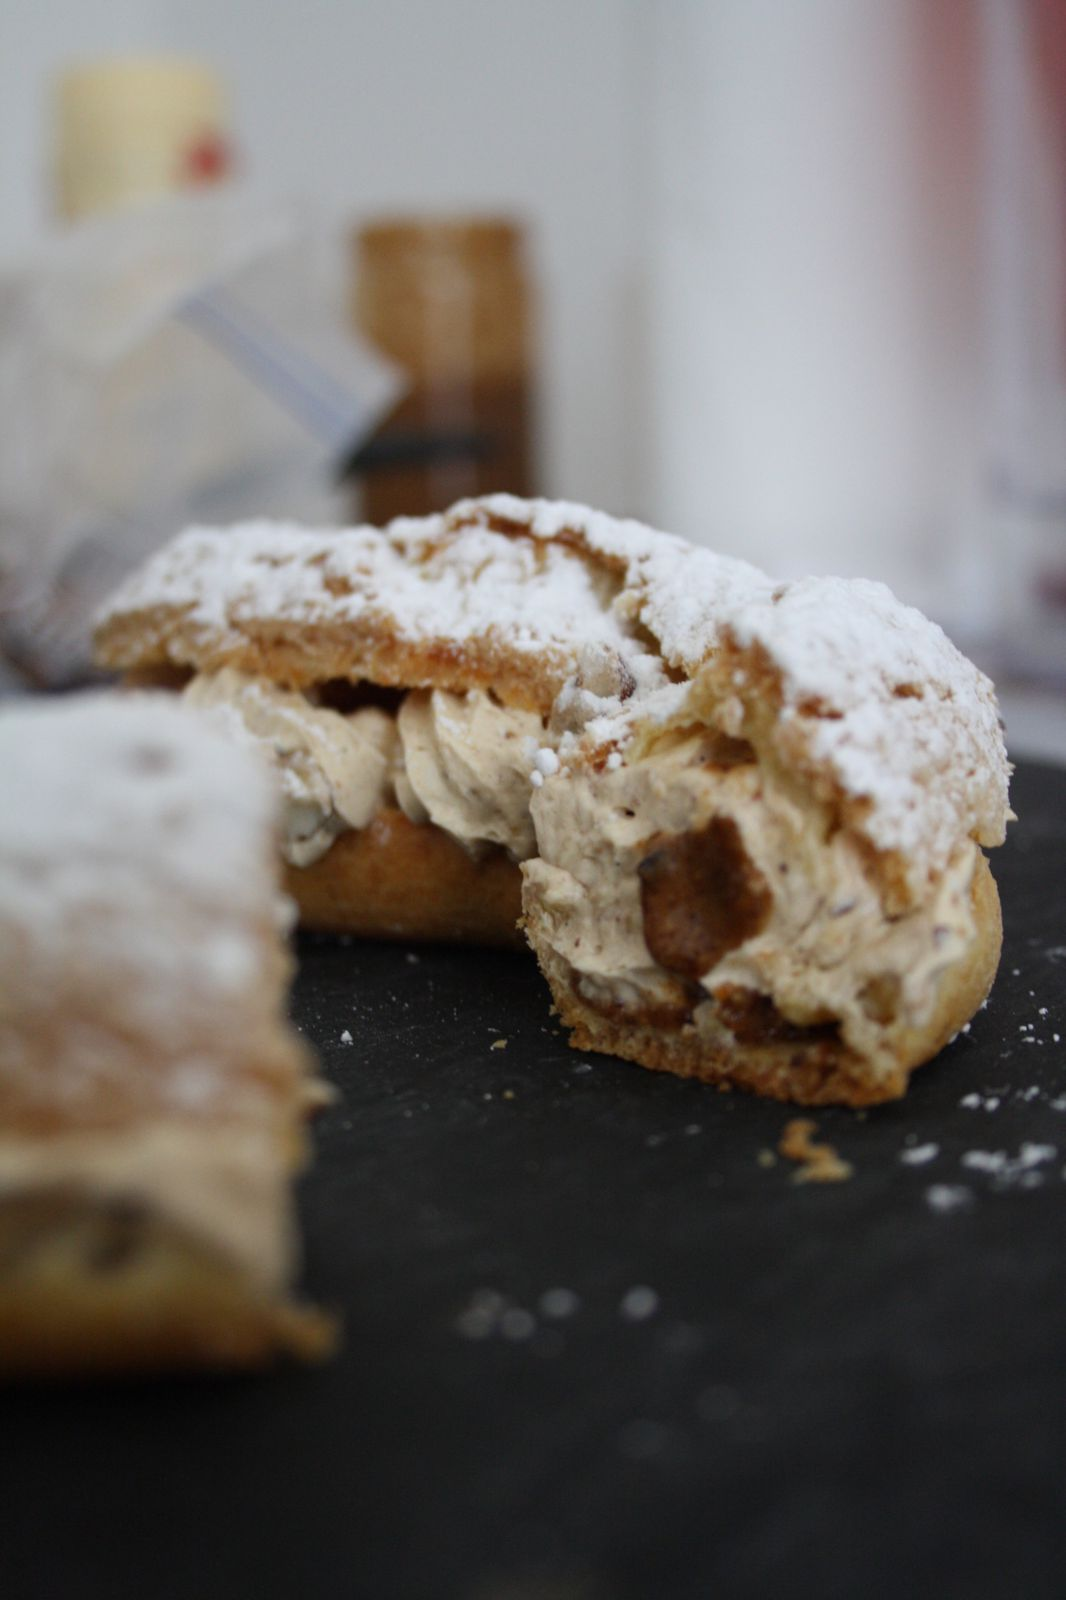 PARIS-BREST DE C. MICHALAK